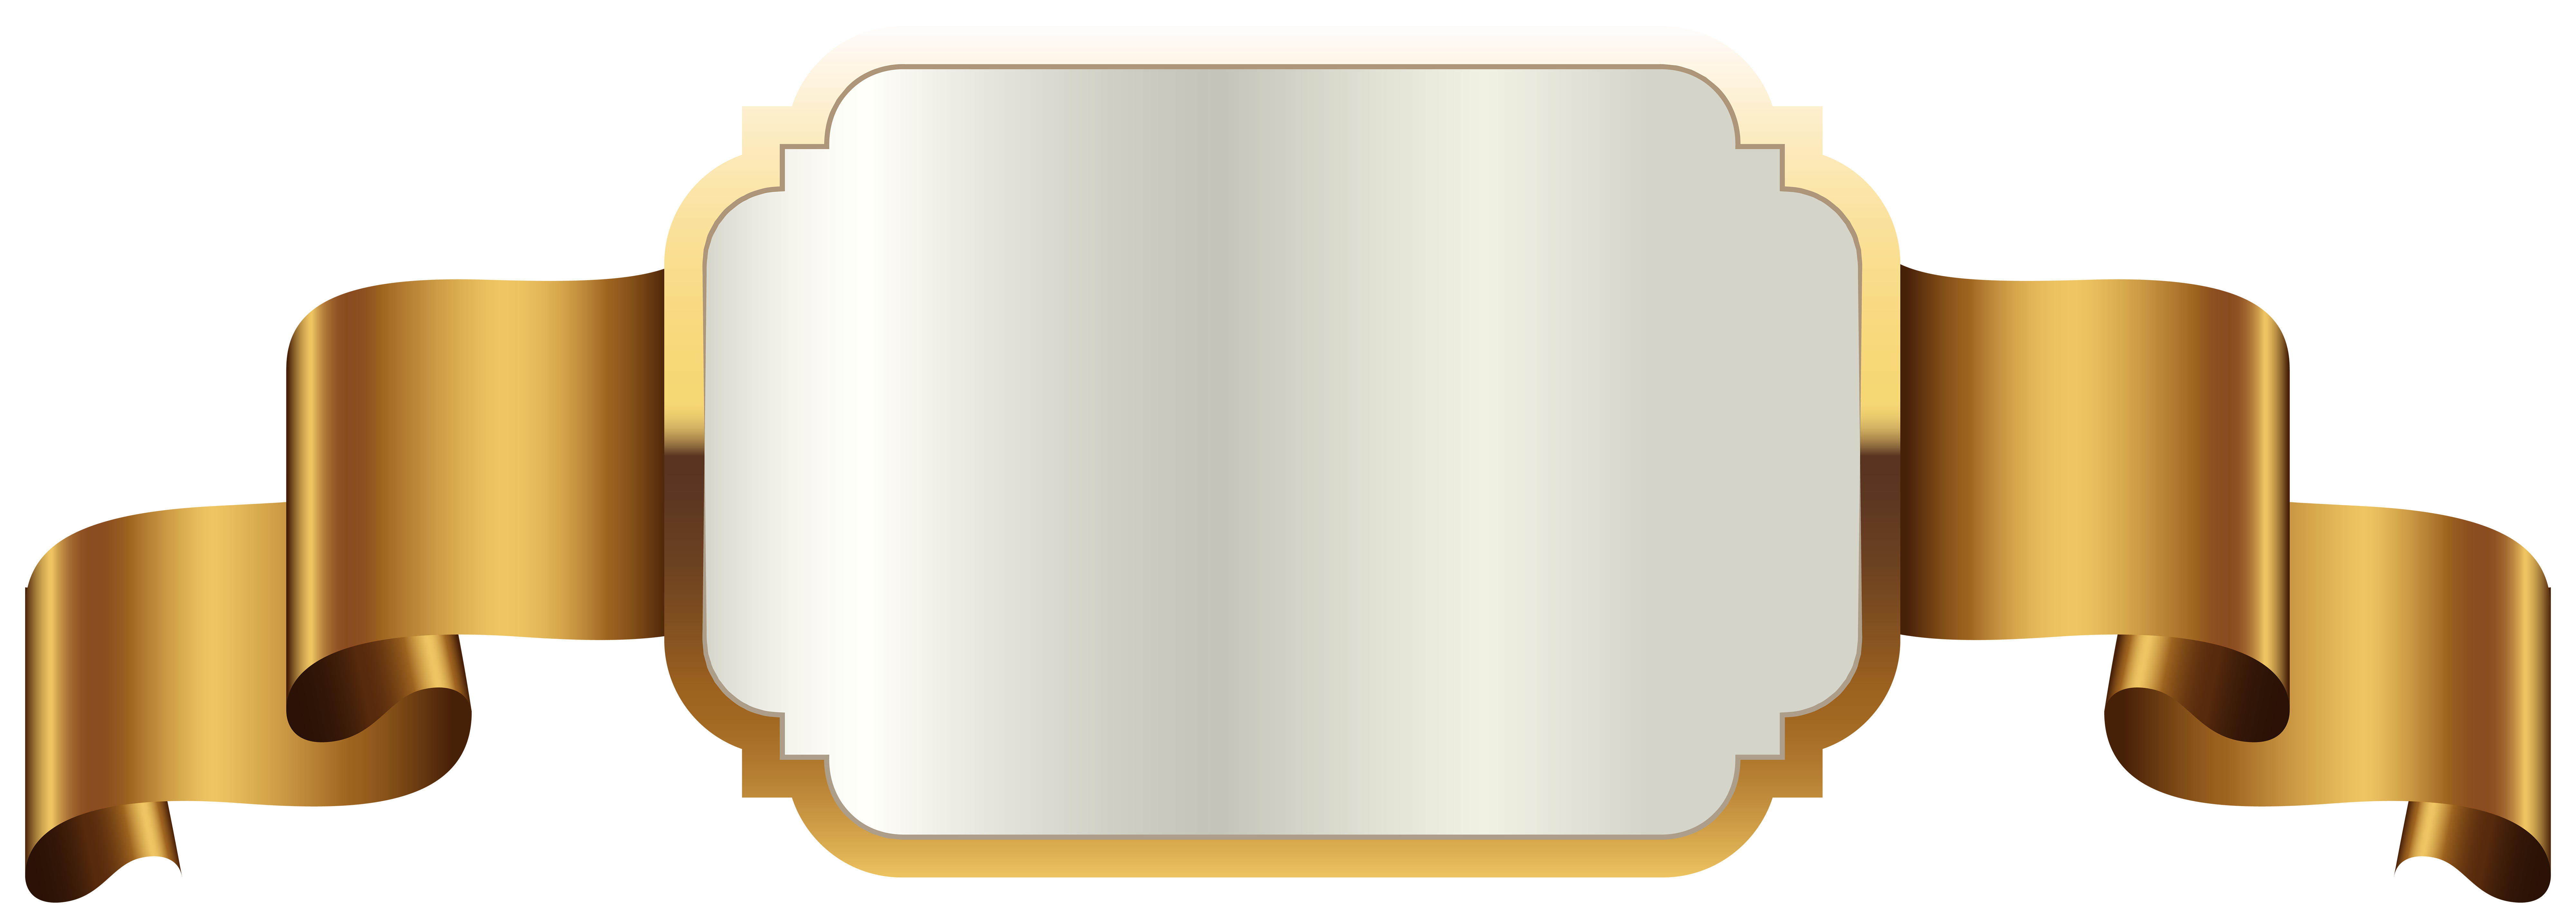 Finance clipart transparent background. Gold label template png